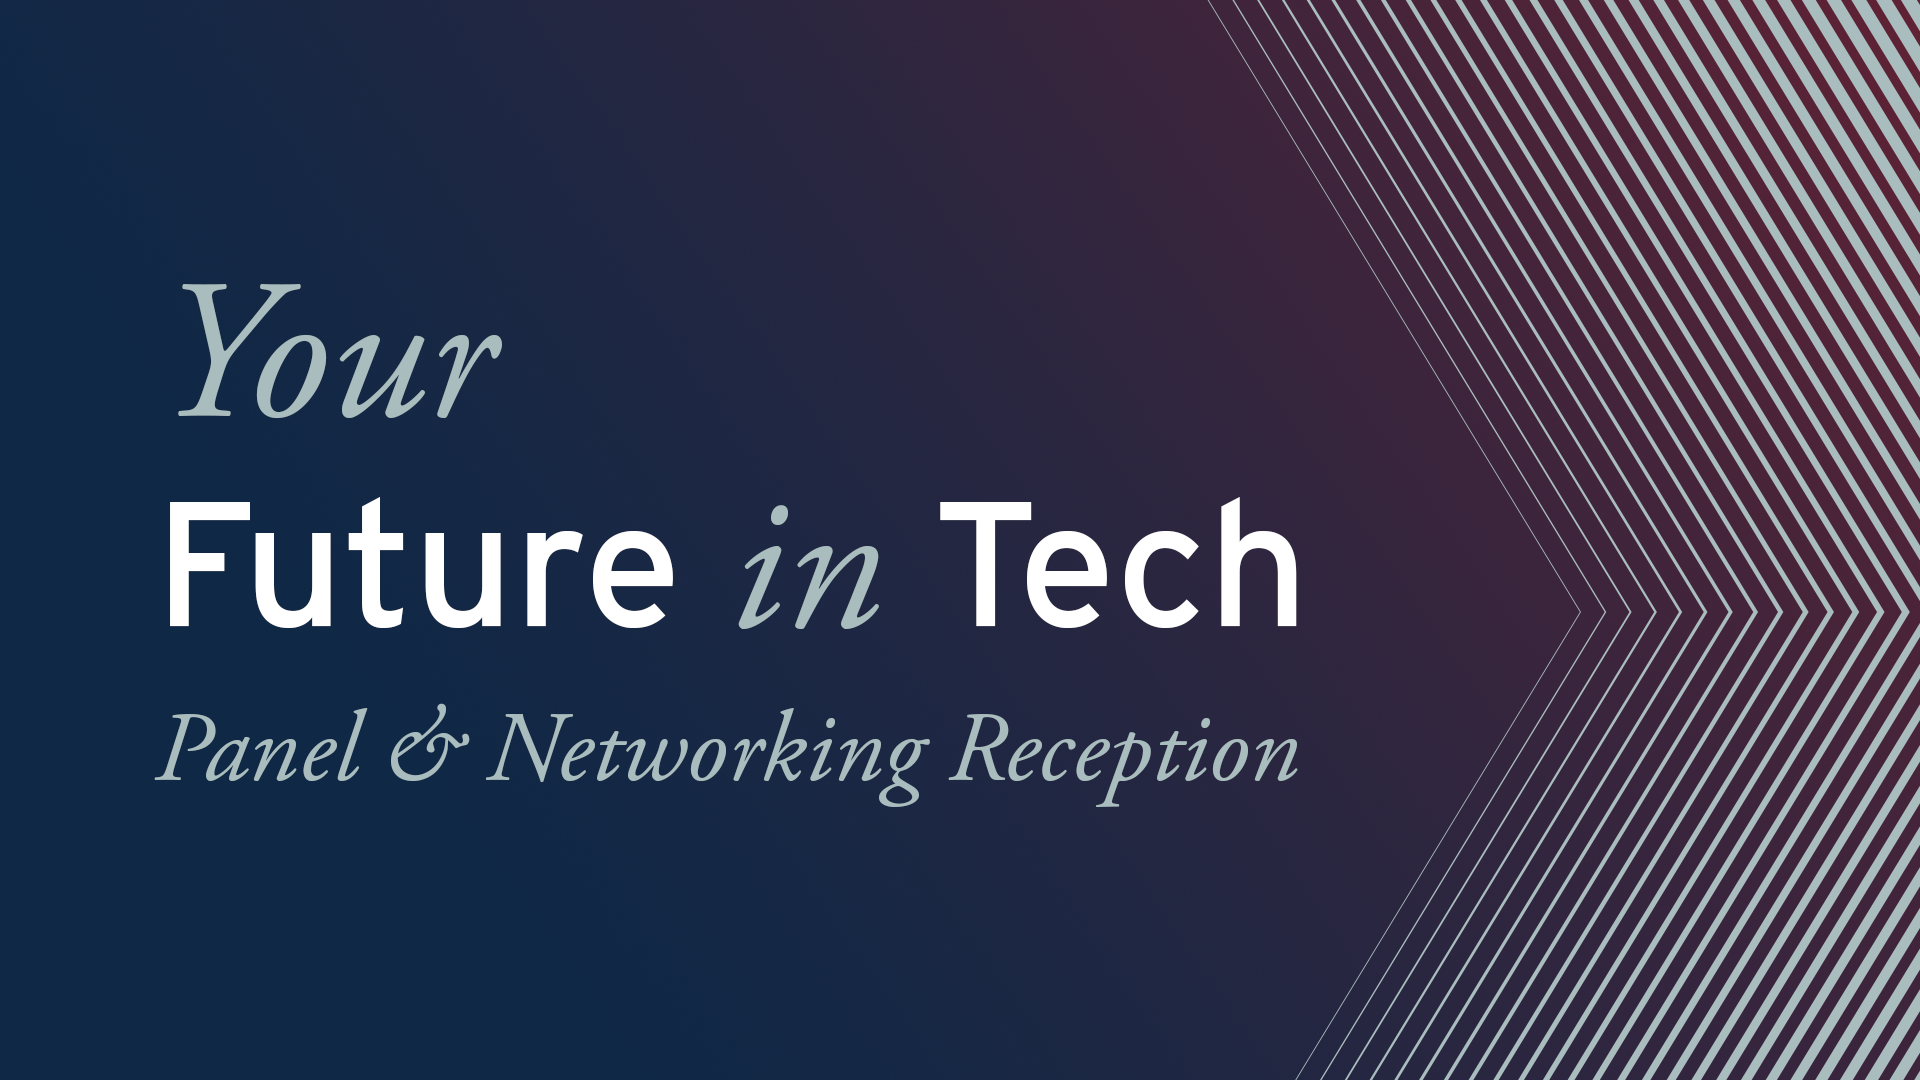 your future in tech panel and networking reception event promotion